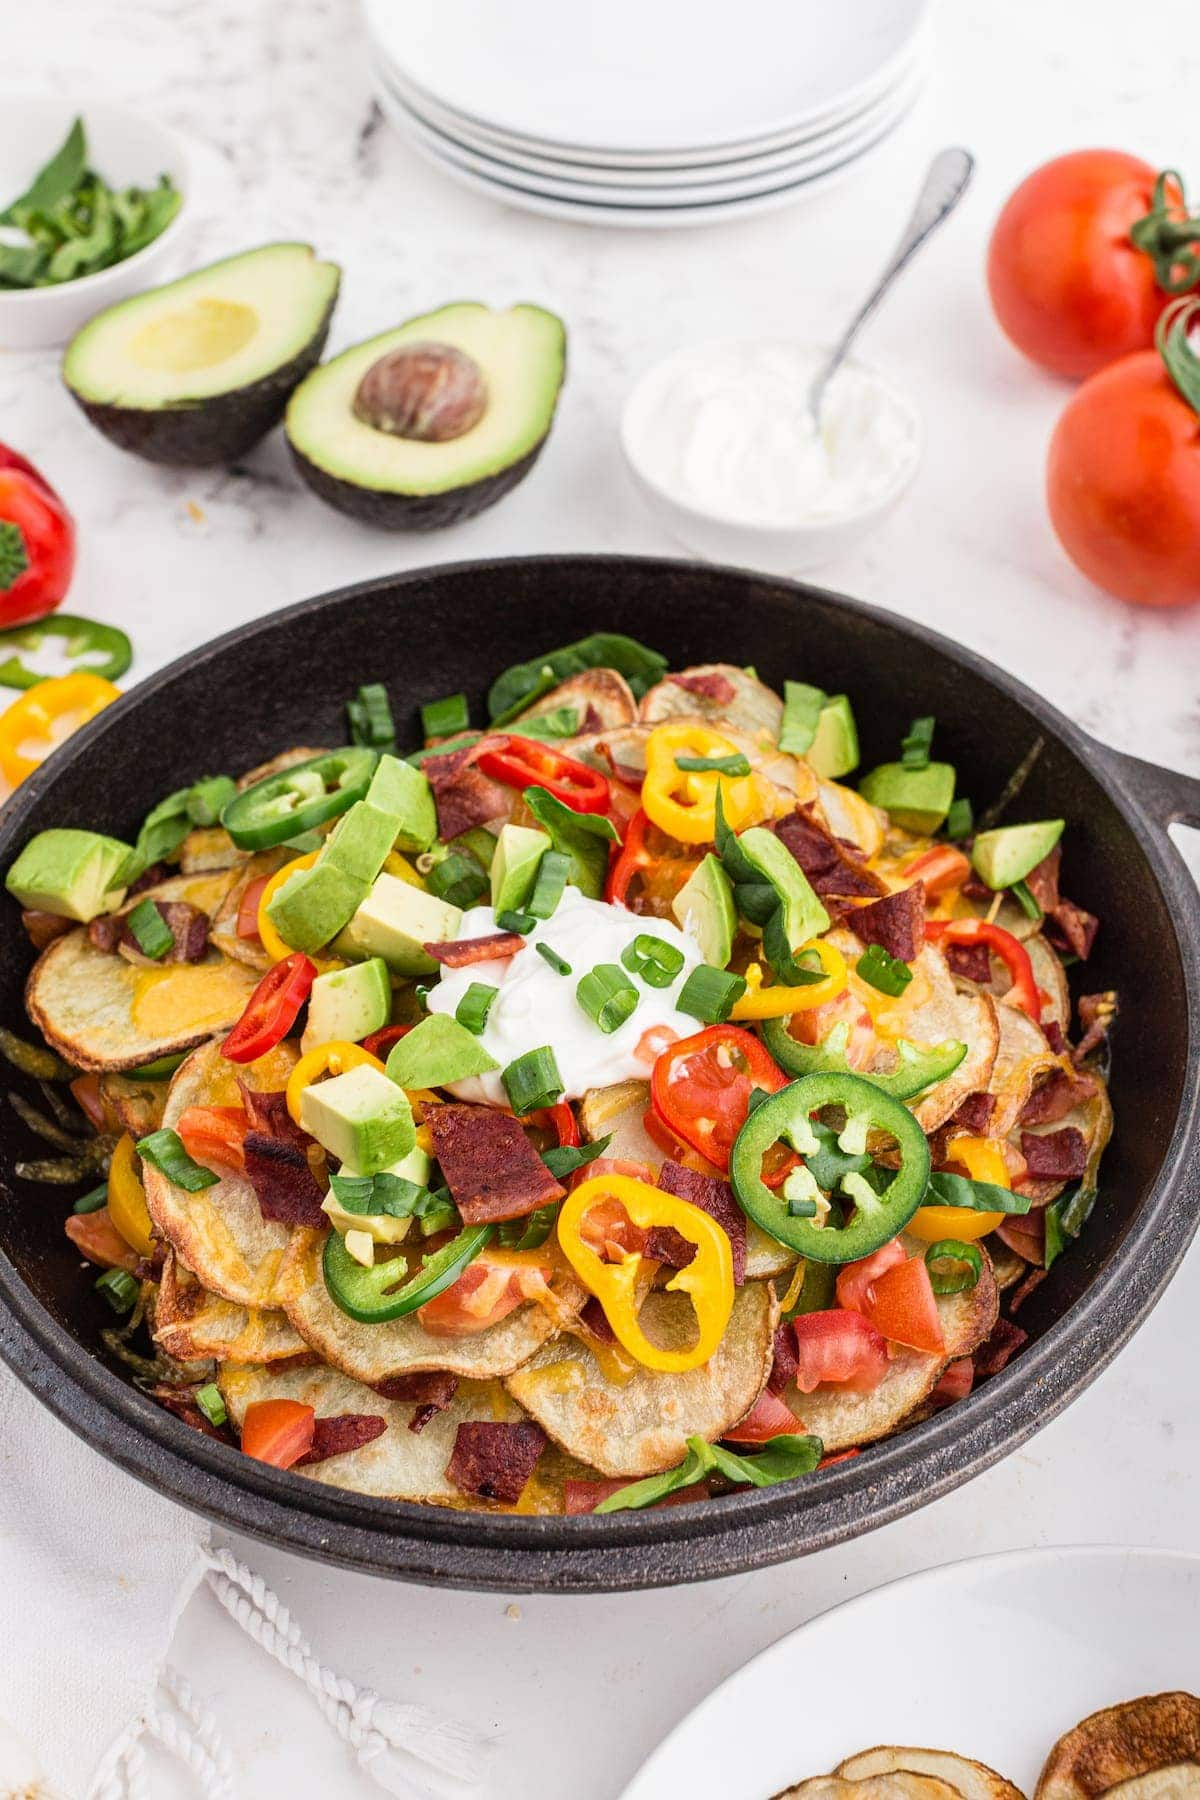 Irish nachos with turkey bacon, melted cheese, green onions, and bell peppers on a black plate.